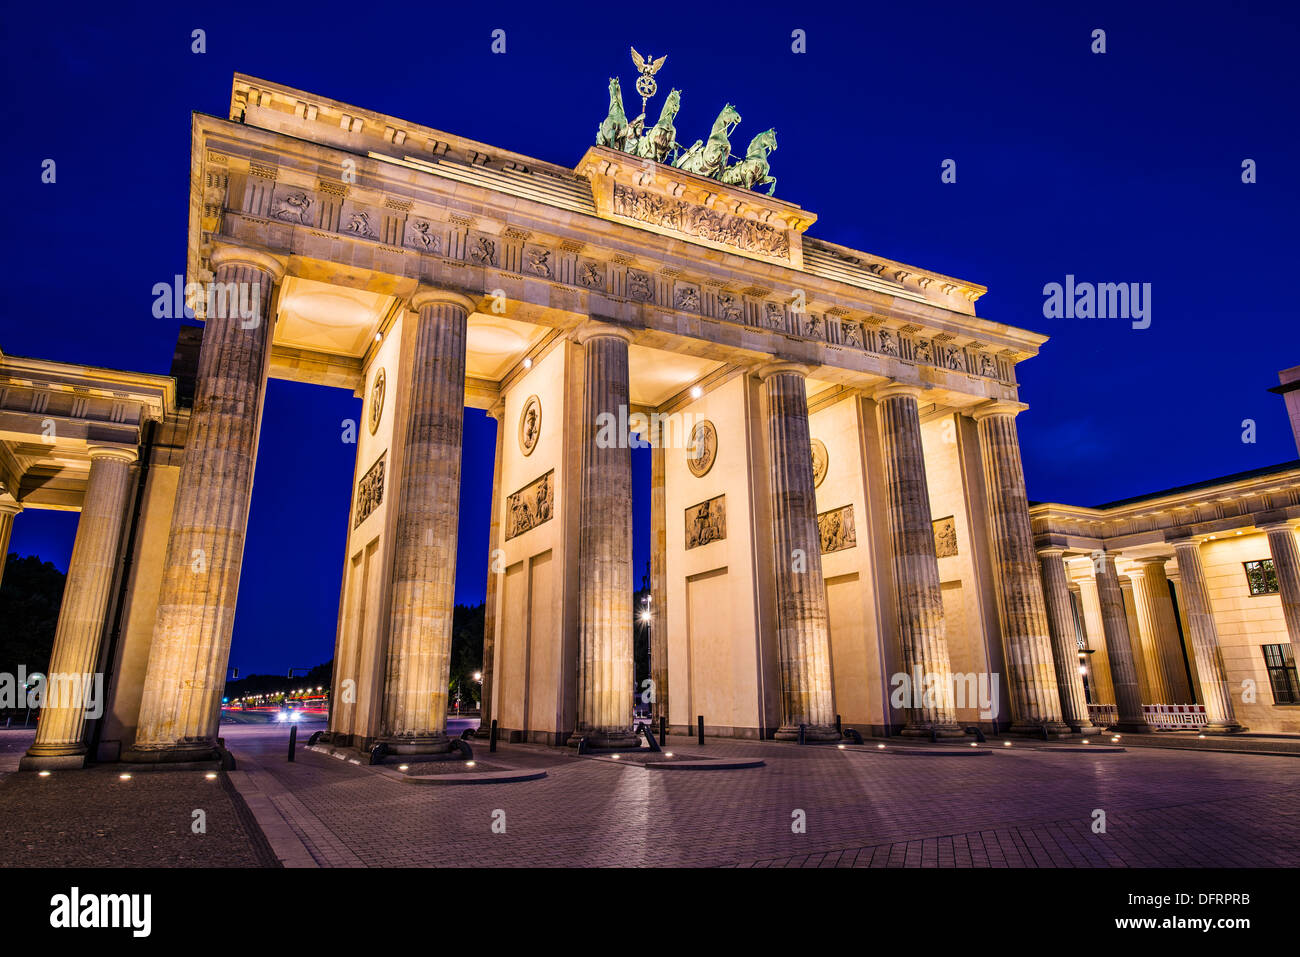 Brandenburger Tor in Berlin, Deutschland. Brandenburger Tor in Berlin, Deutschland. Stockbild